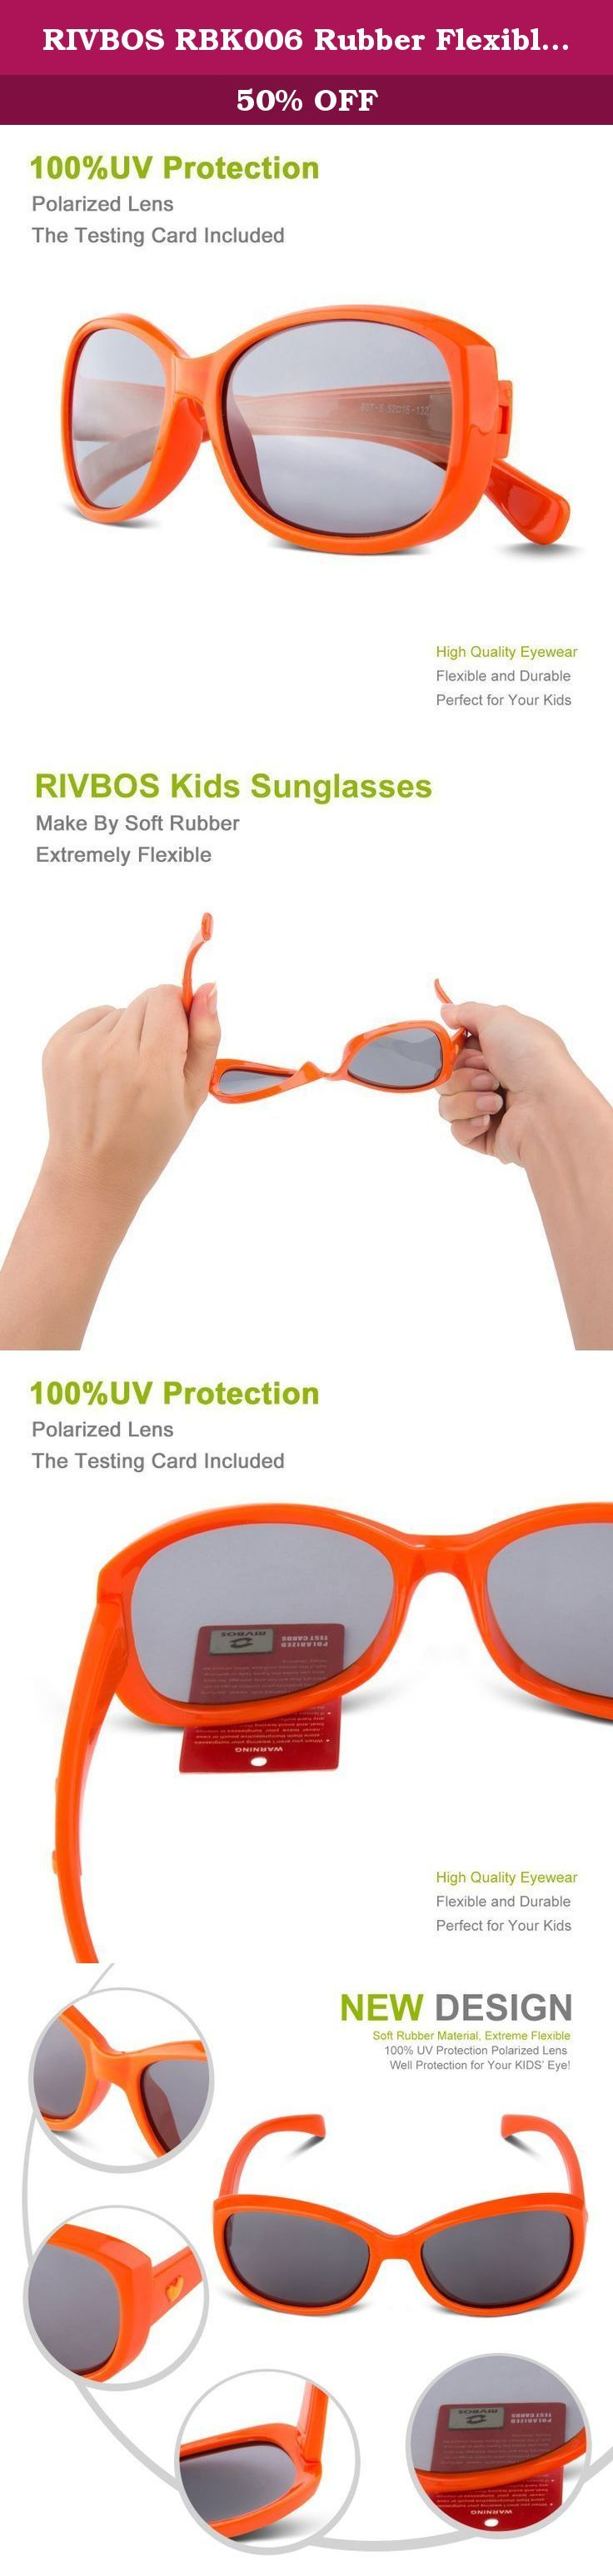 RIVBOS RBK006 Rubber Flexible Kids Polarized Sunglasses Age 3-10 (Orange Heart). Provide The High Quality Sunglasses and Customer Service on Amazon RIVBOS Kid's Sunglasses are designed for children's outdoor activities. Lens made by flexible food grade rubber bendable material are safe for kids. Our Newest Polarized Lenses drastically reduce the brightness of shiny surfaces as well as helps reduce glare which in turn helps kids see the many beauties of the word without damaging their eyes...